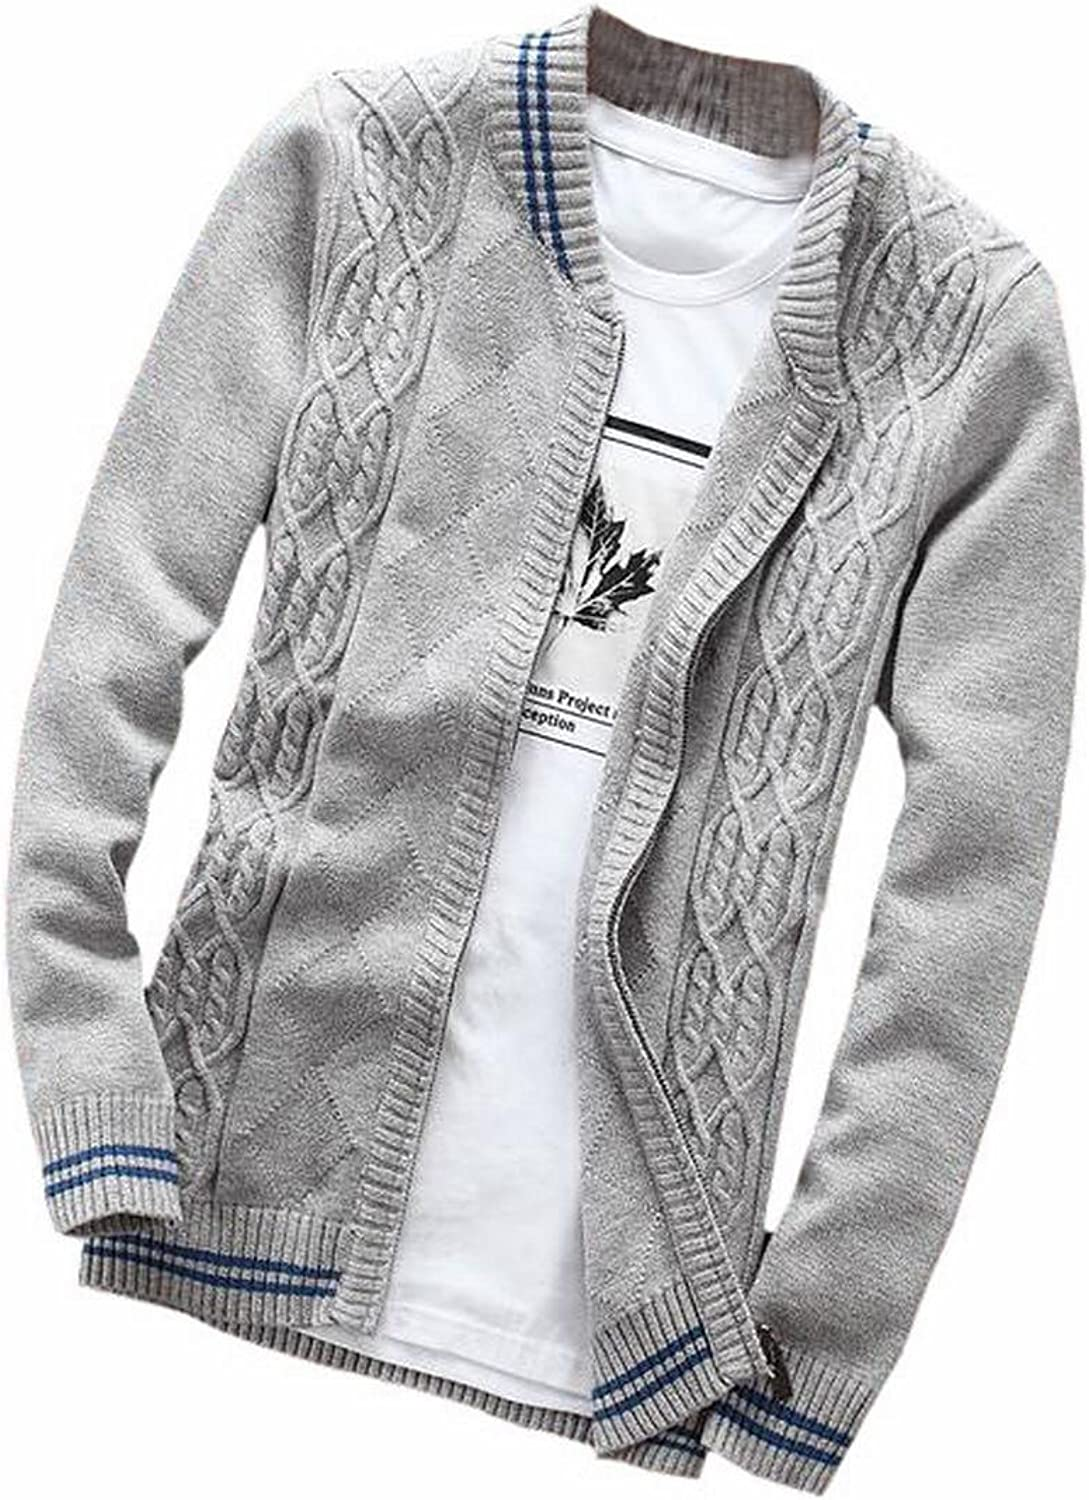 Pivaconis Mens Casual Knitted Cardigan Zip-up with Twisted Pattern